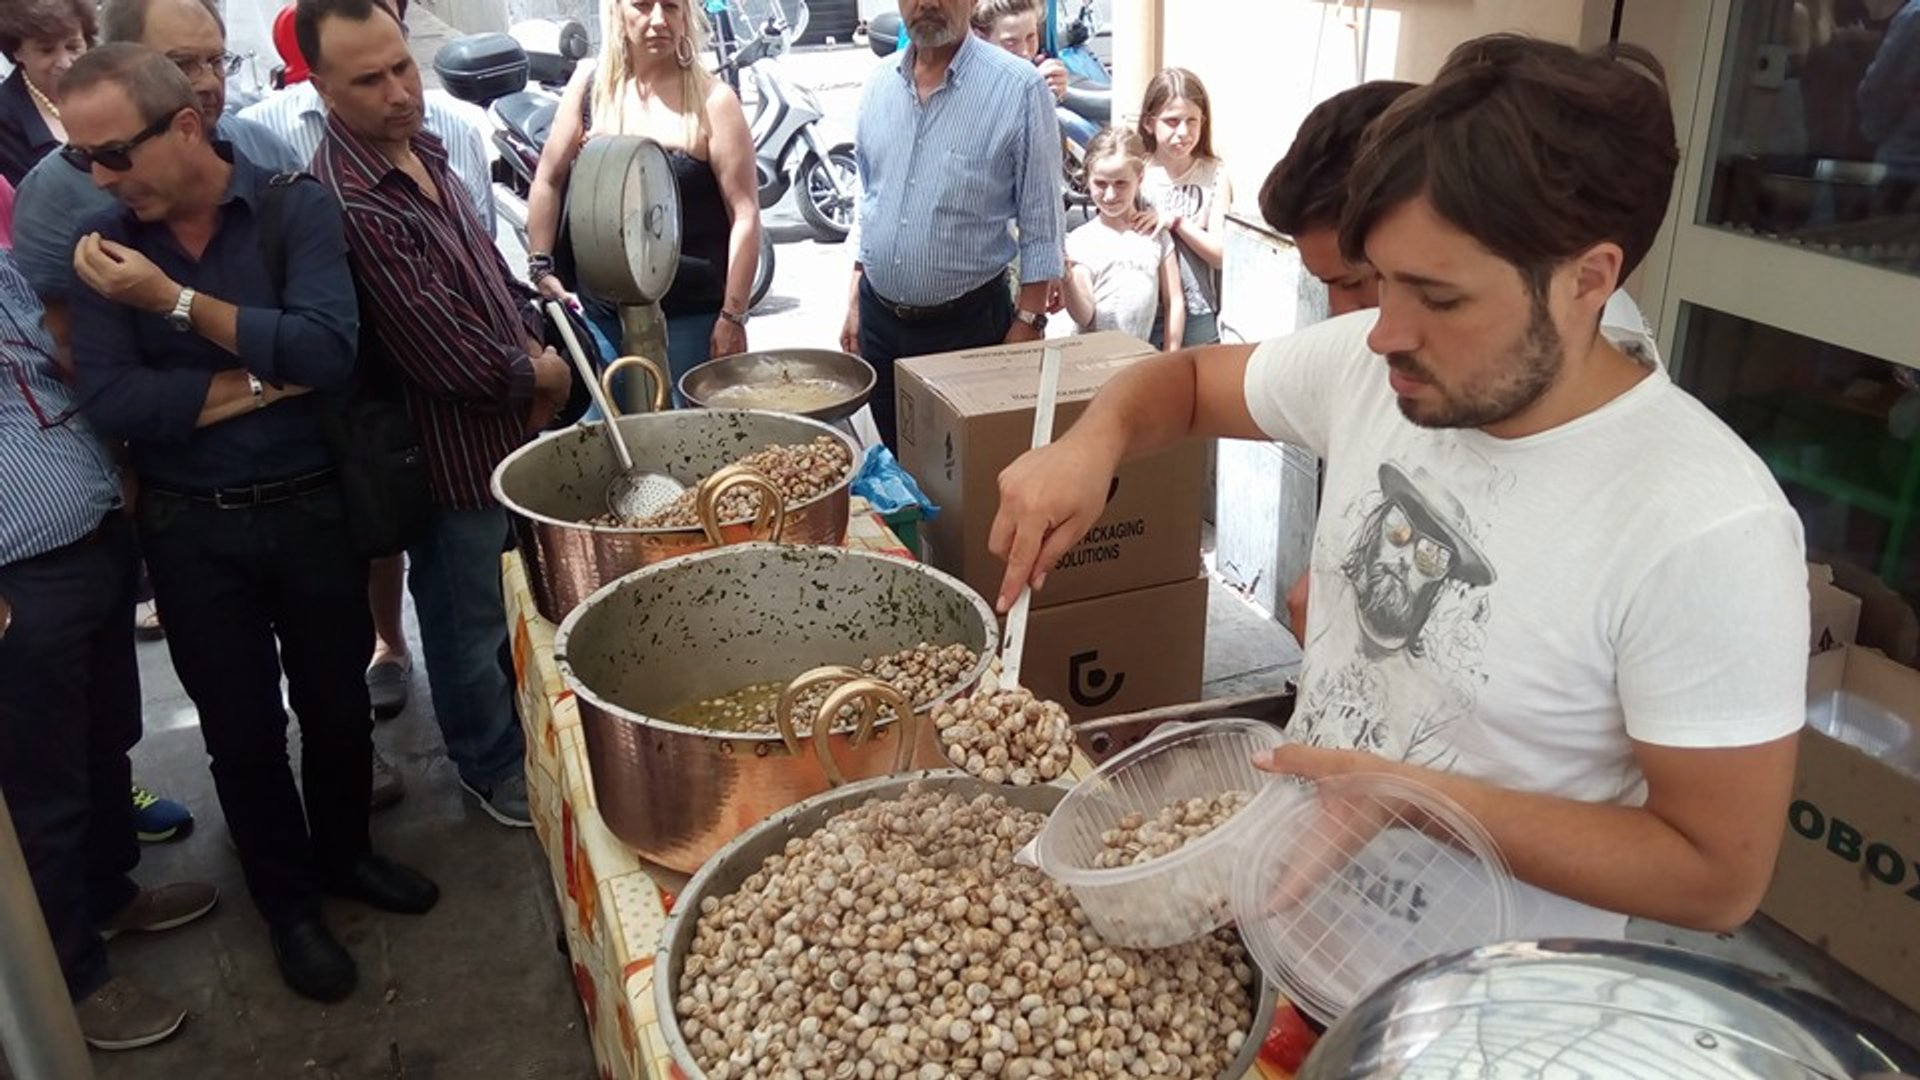 Best time for Snails or Babbaluci in Sicily 2020